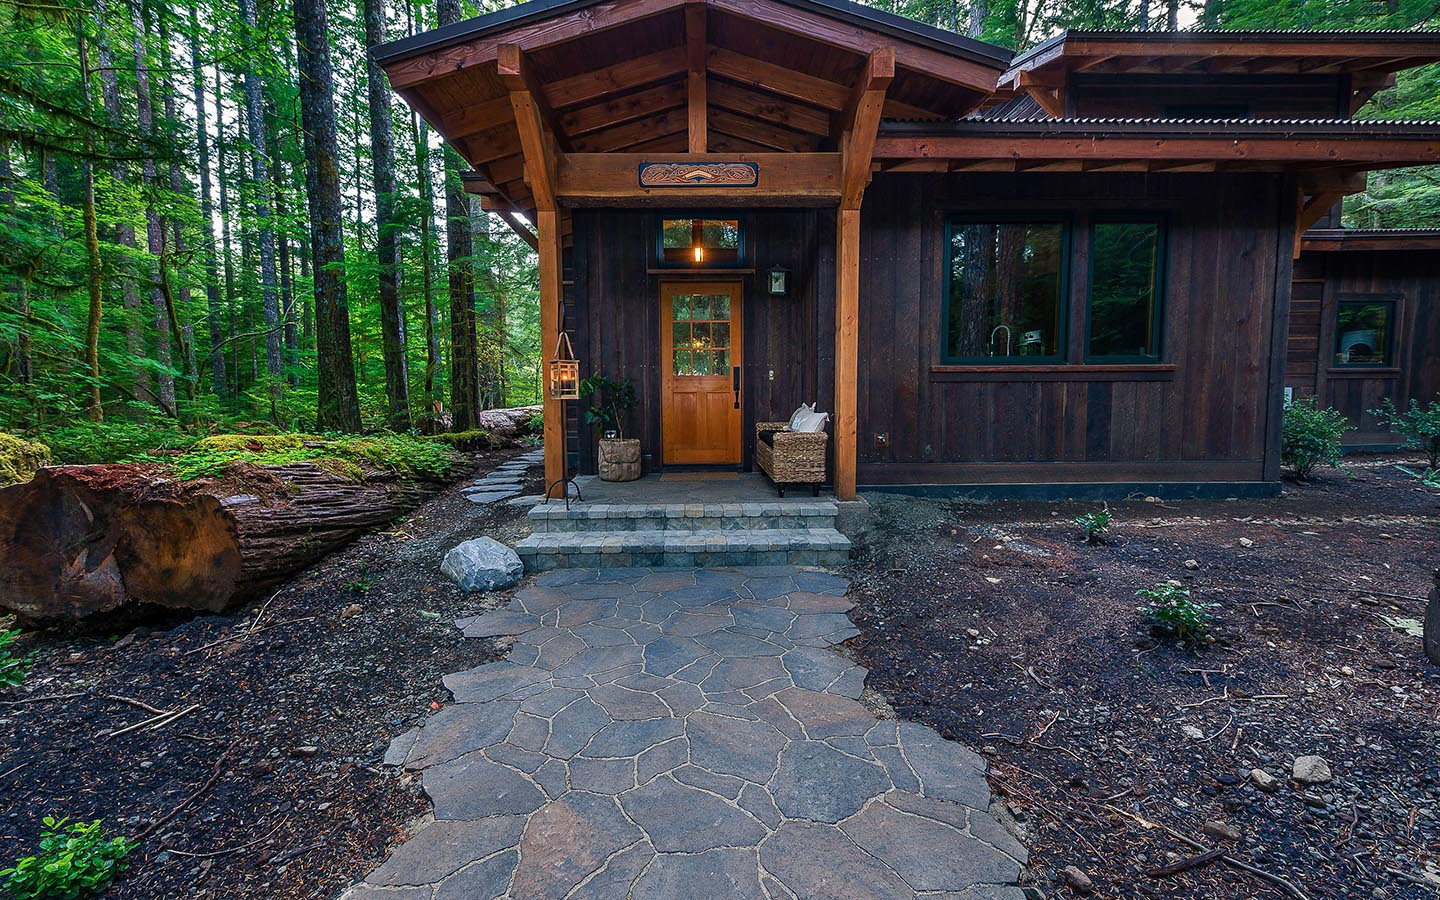 Nimmelman property paradise restored landscaping for Cabin landscaping